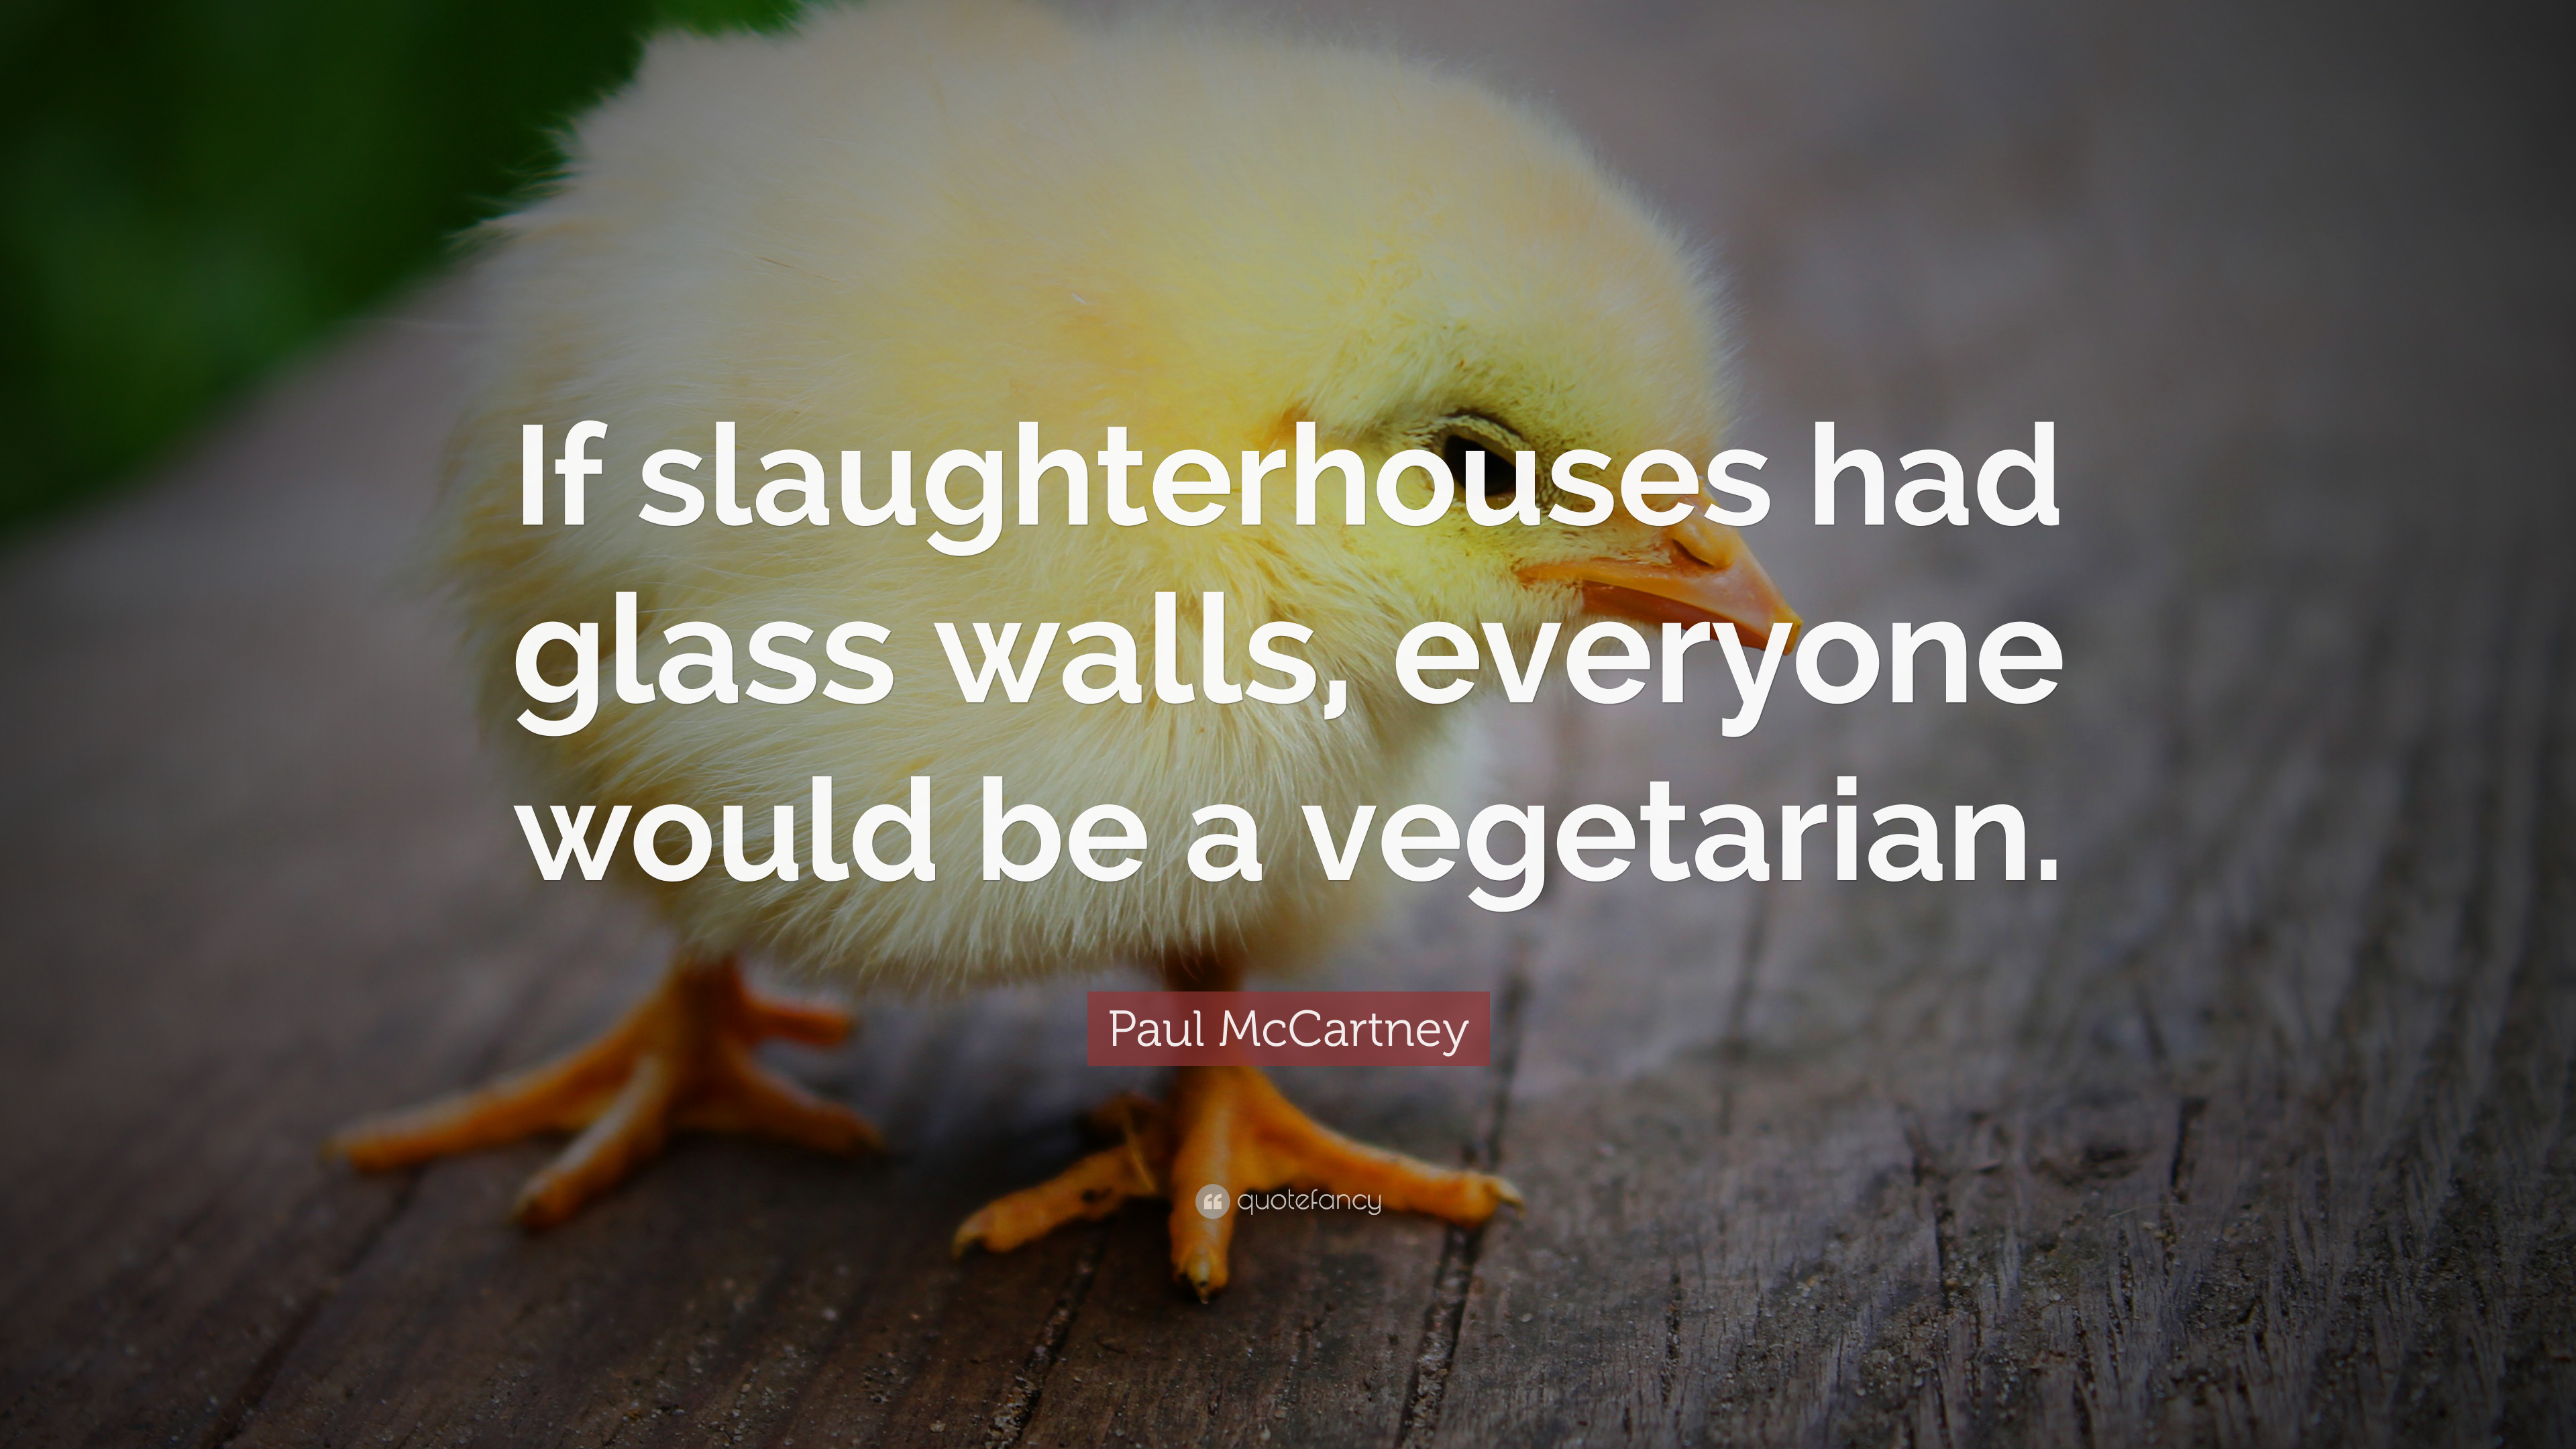 Paul Mccartney Quote If Slaughterhouses Had Glass Walls Everyone